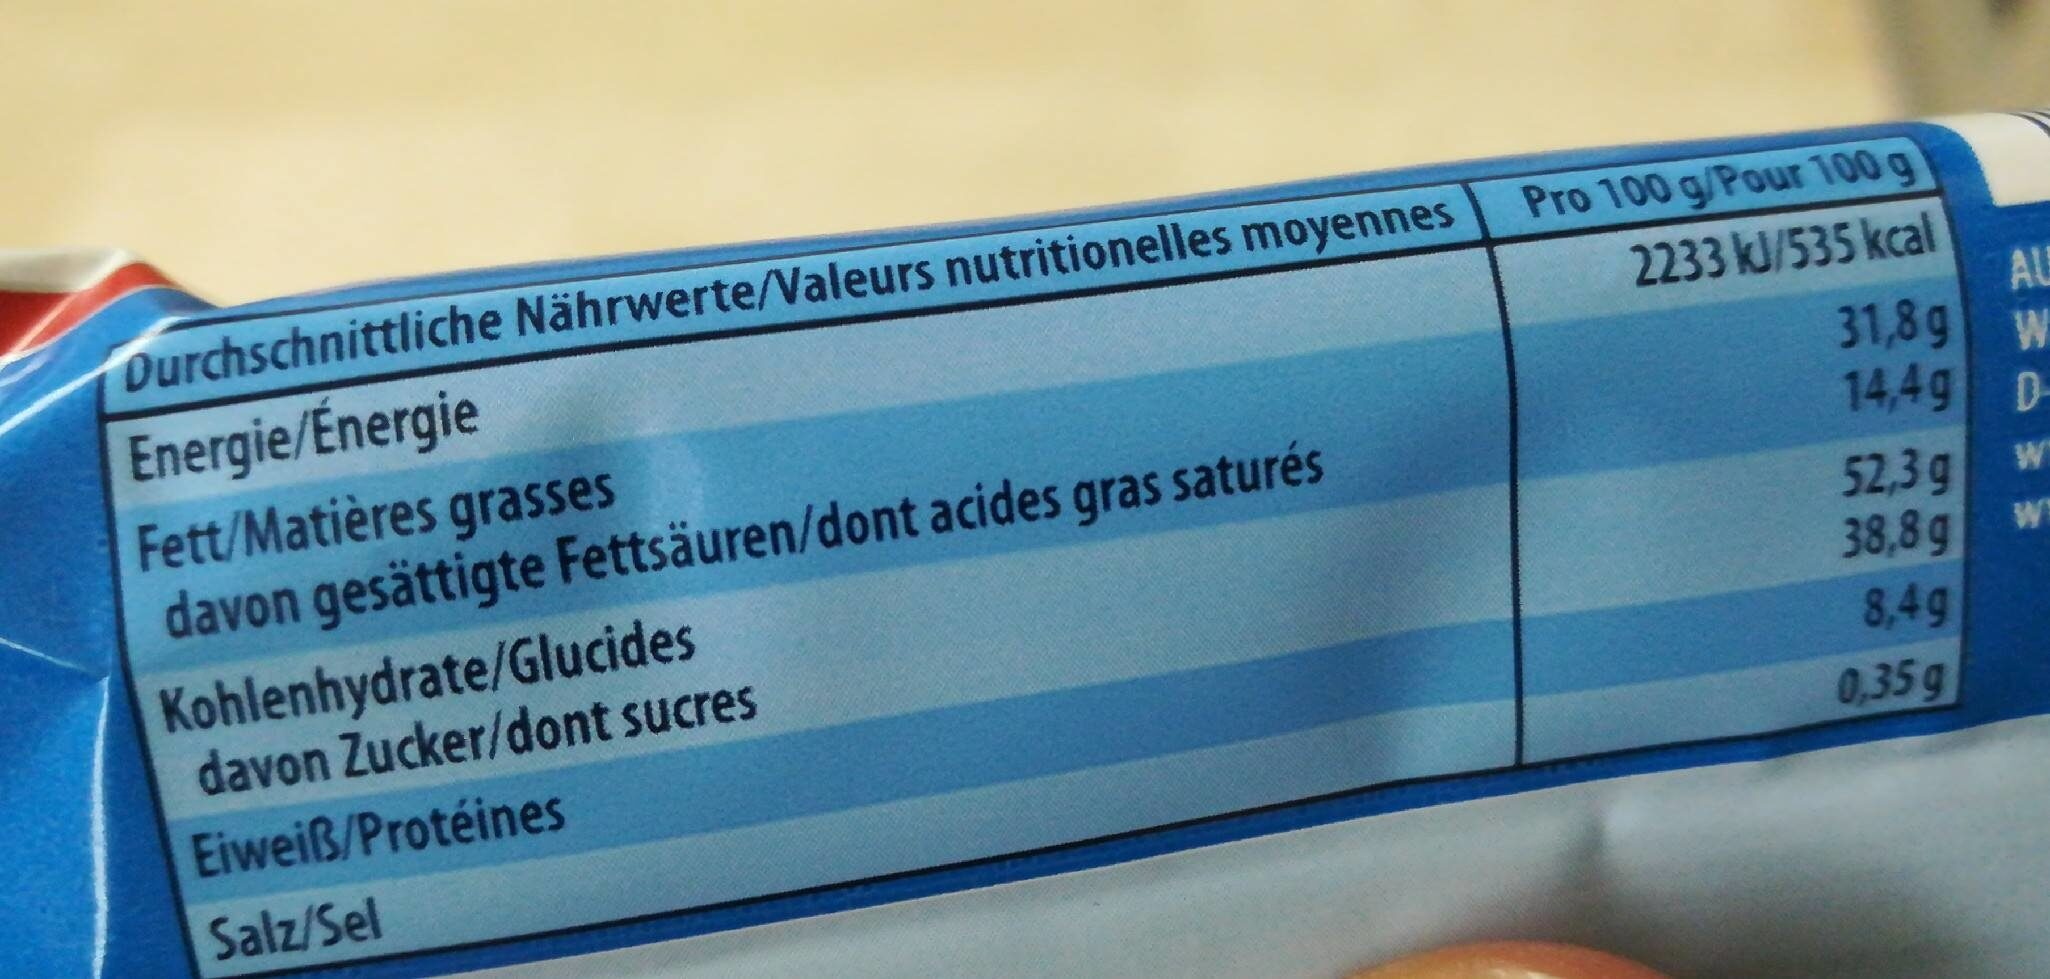 Knoppers, Nussriegel - Nutrition facts